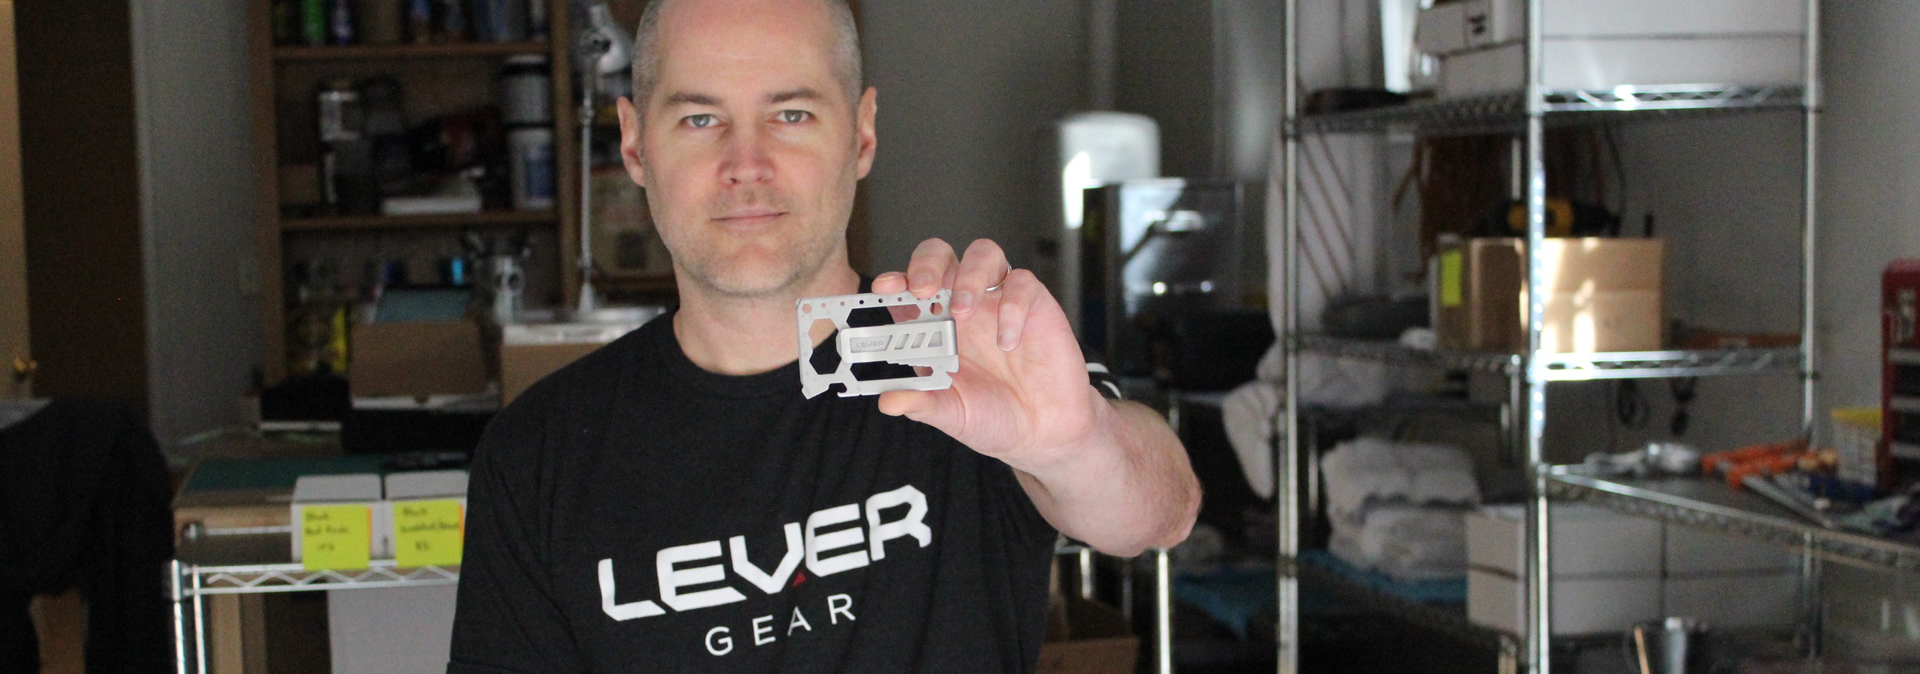 Lever Gear founder